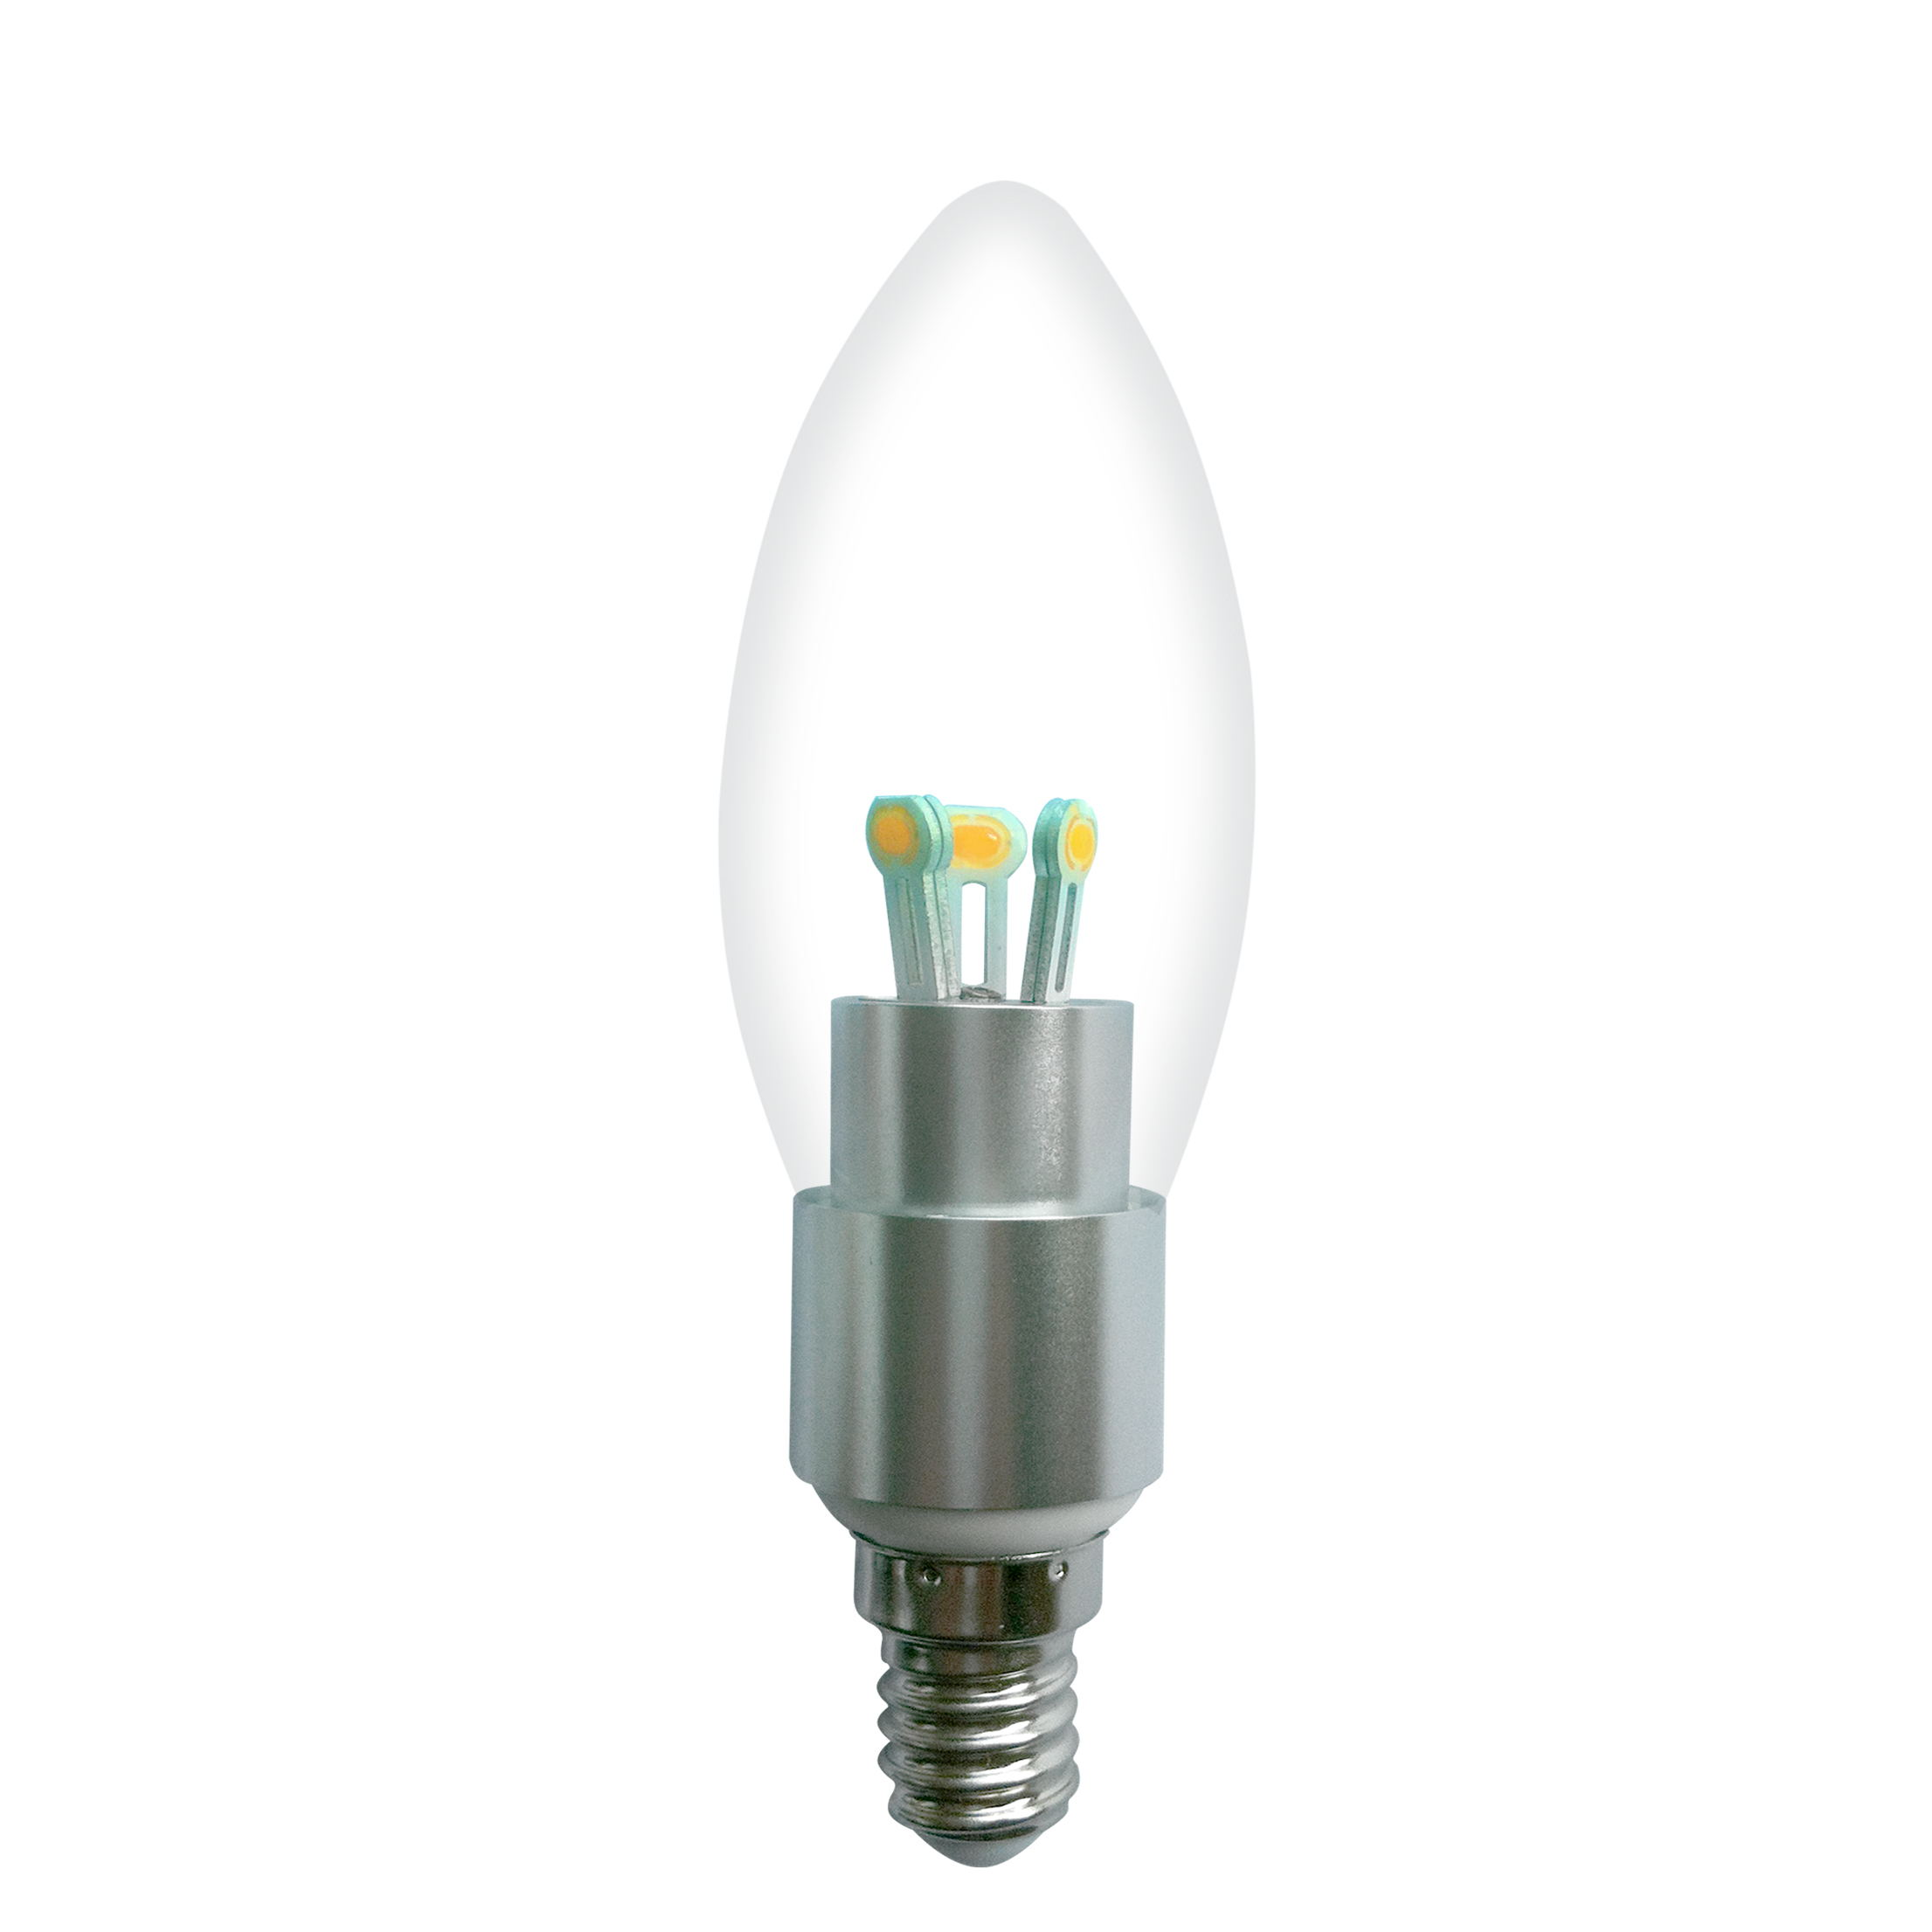 Dimmable LED Candle Bulb High Quality Silver Aluminum 4W Ra85 E14 280lm 85-265V COB SMD Chip Clear/Frosted/Milky Glass Cover